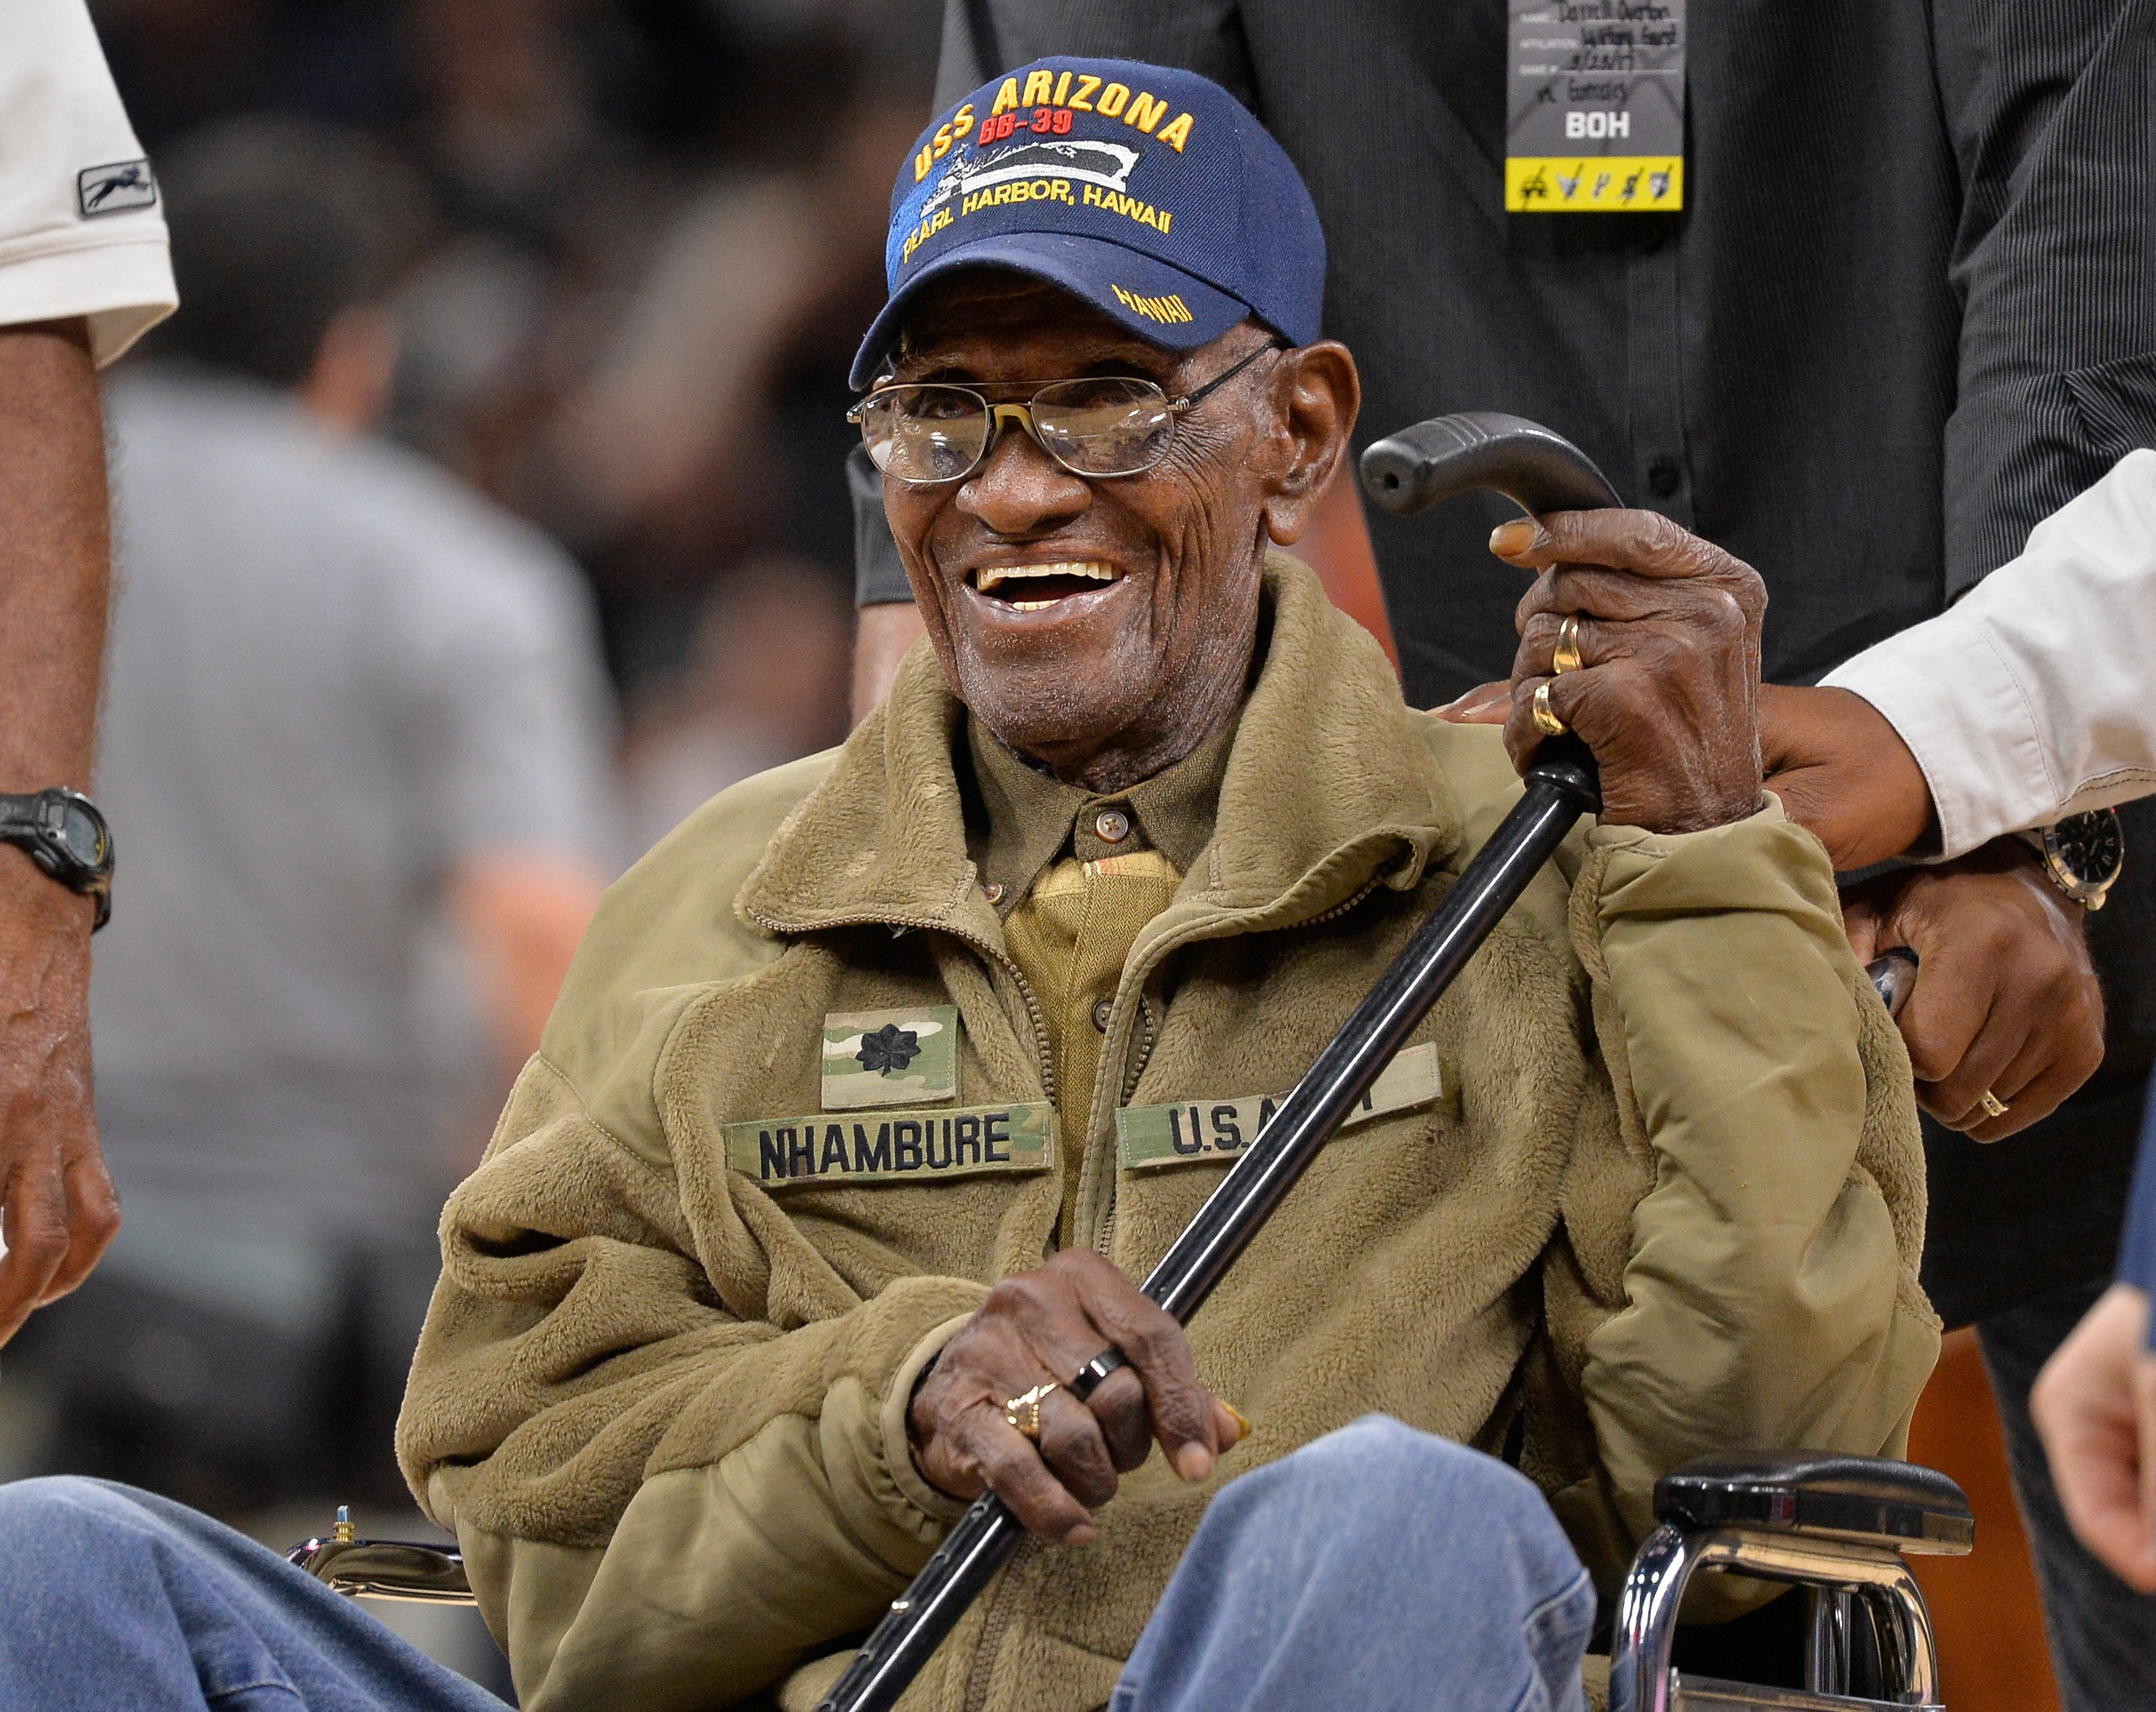 """Richard Overton made us proud to be Texans and proud to be Americans,"" Texas Gov. Greg Abbott said."